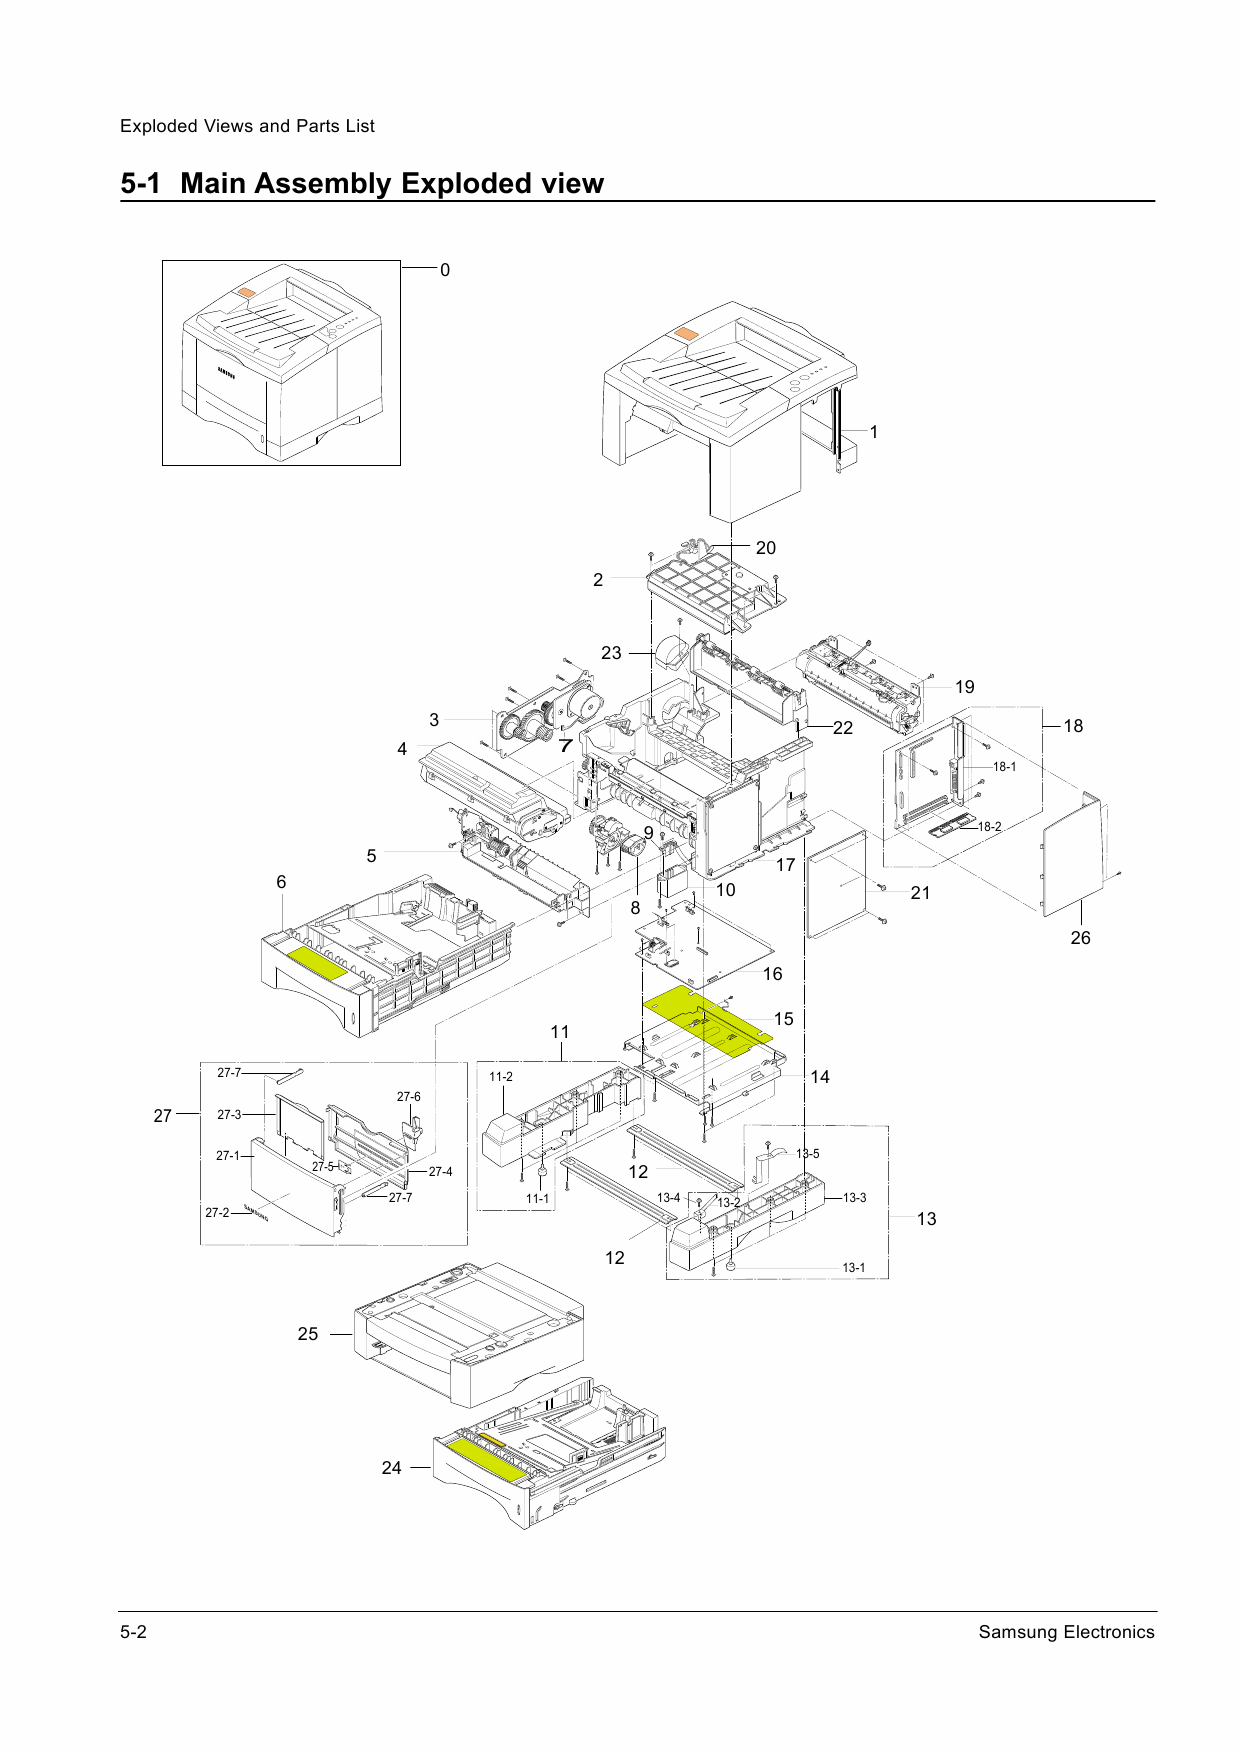 1993 jeep diagram alt with Sm 8 Wiring Diagram on Vintage Fender   Wiring Diagram Pdf besides 7 Plug Wiring Diagram further Replace Belt On 2000 Toyota Echo Guide moreover 96 Chevrolet Cavalier Starter Wiring Diagram likewise Electric Chair Wiring Diagram.